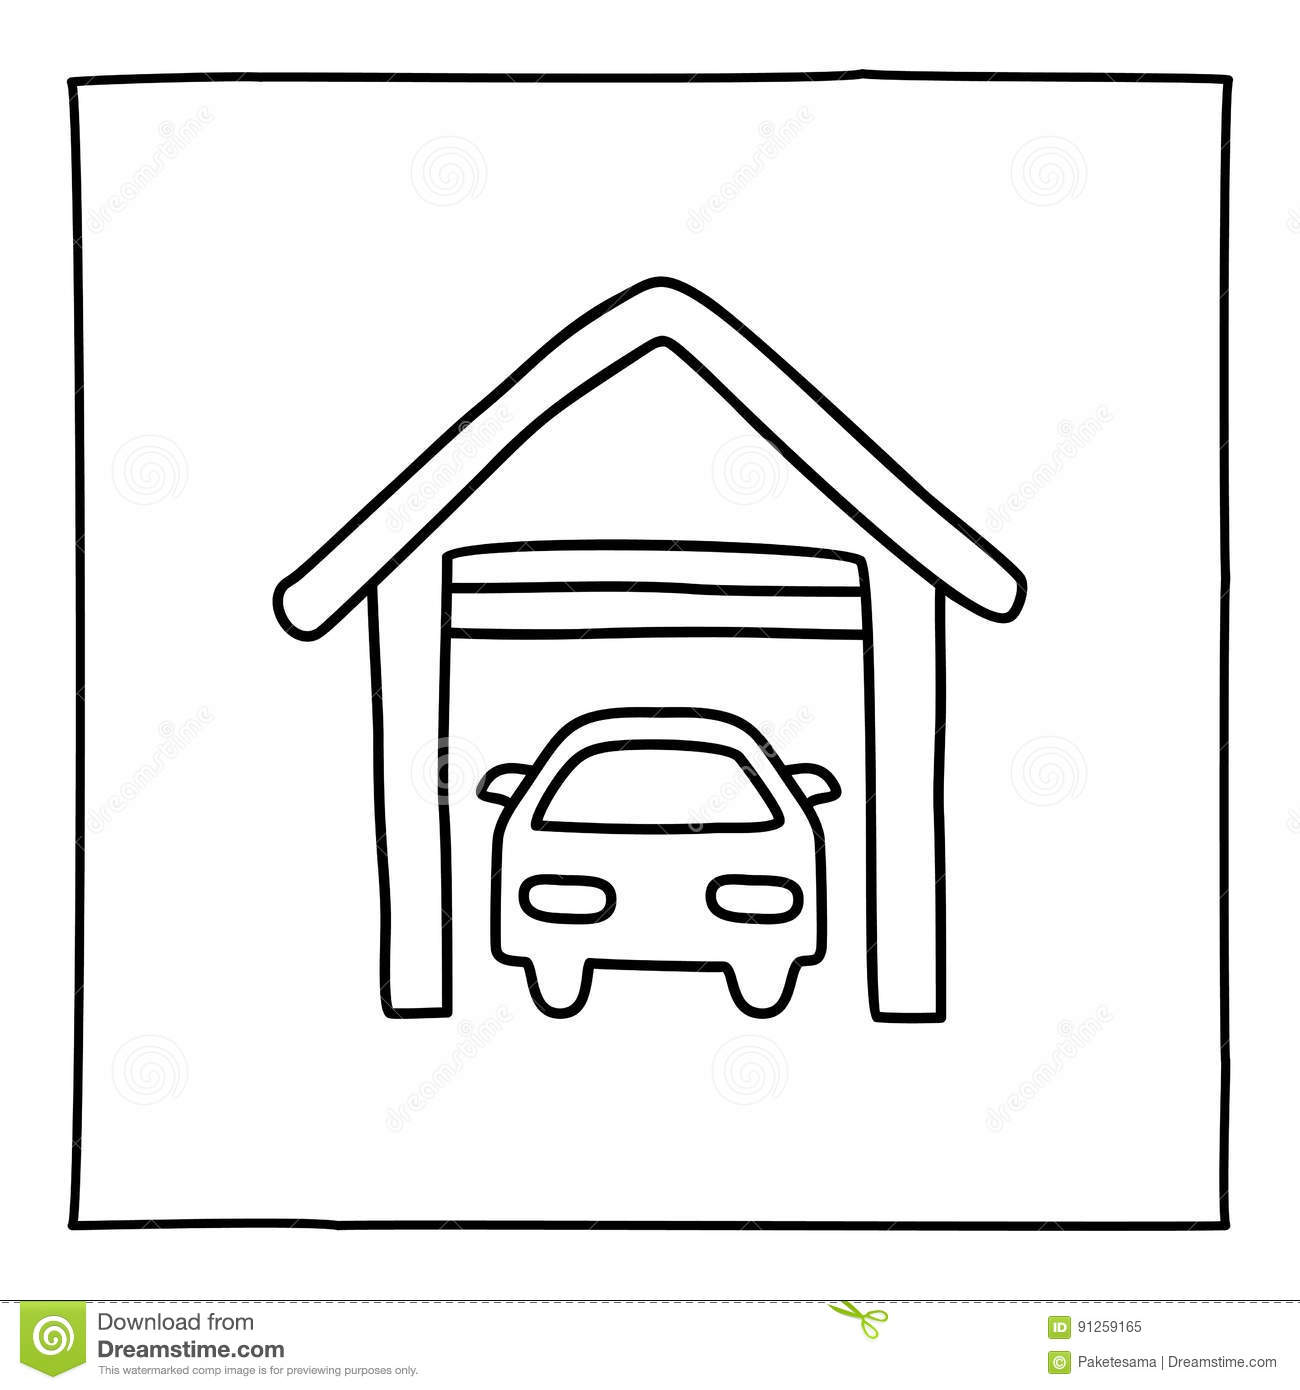 car garage coloring pages - photo#18